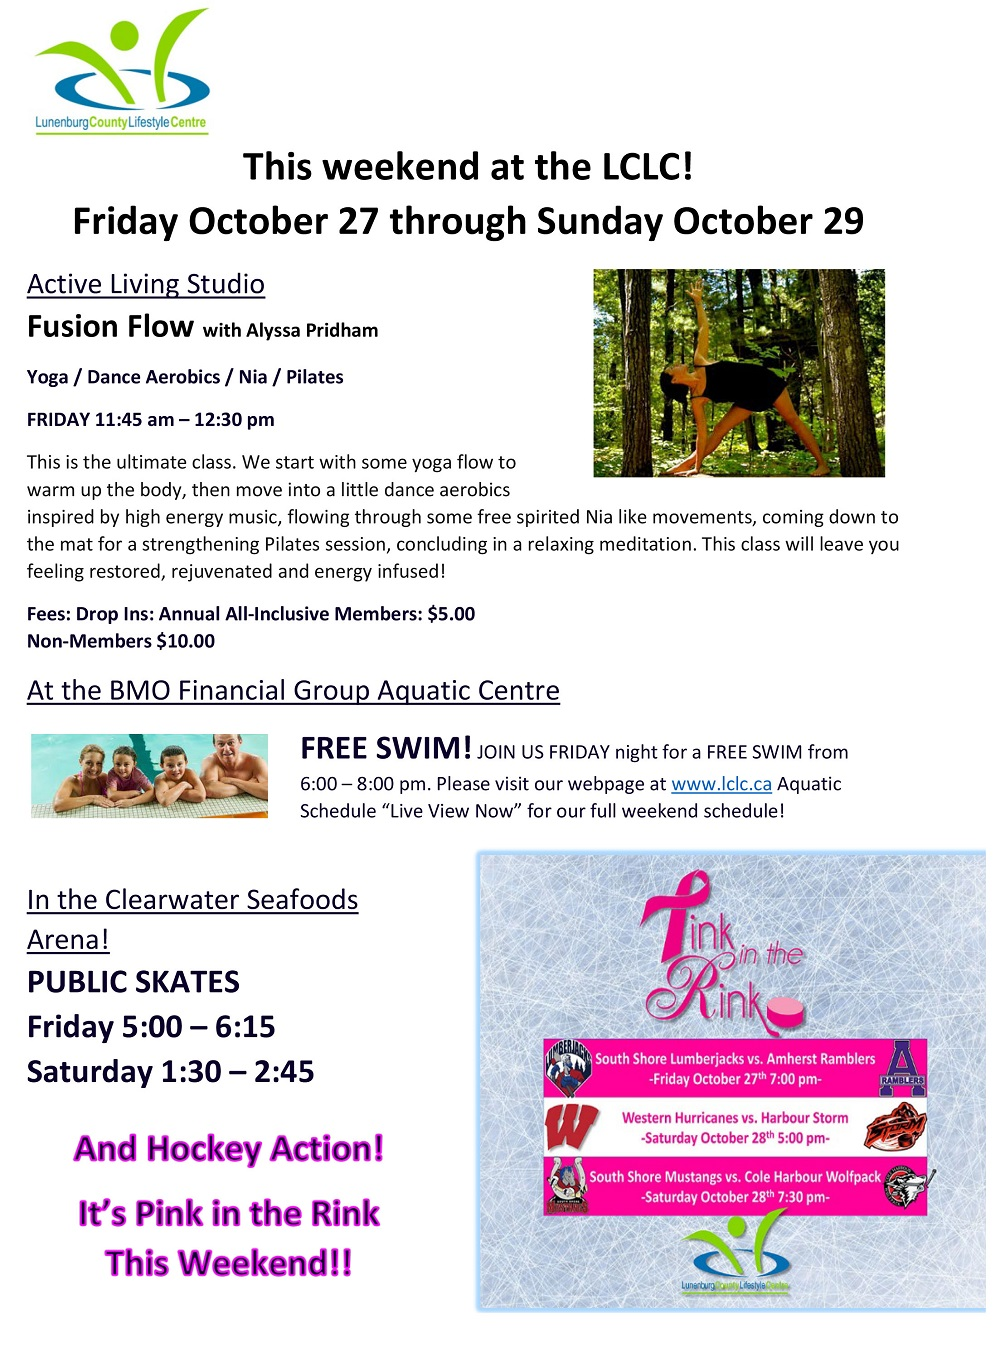 This weekend at the LCLC Oct 27 29 WEB